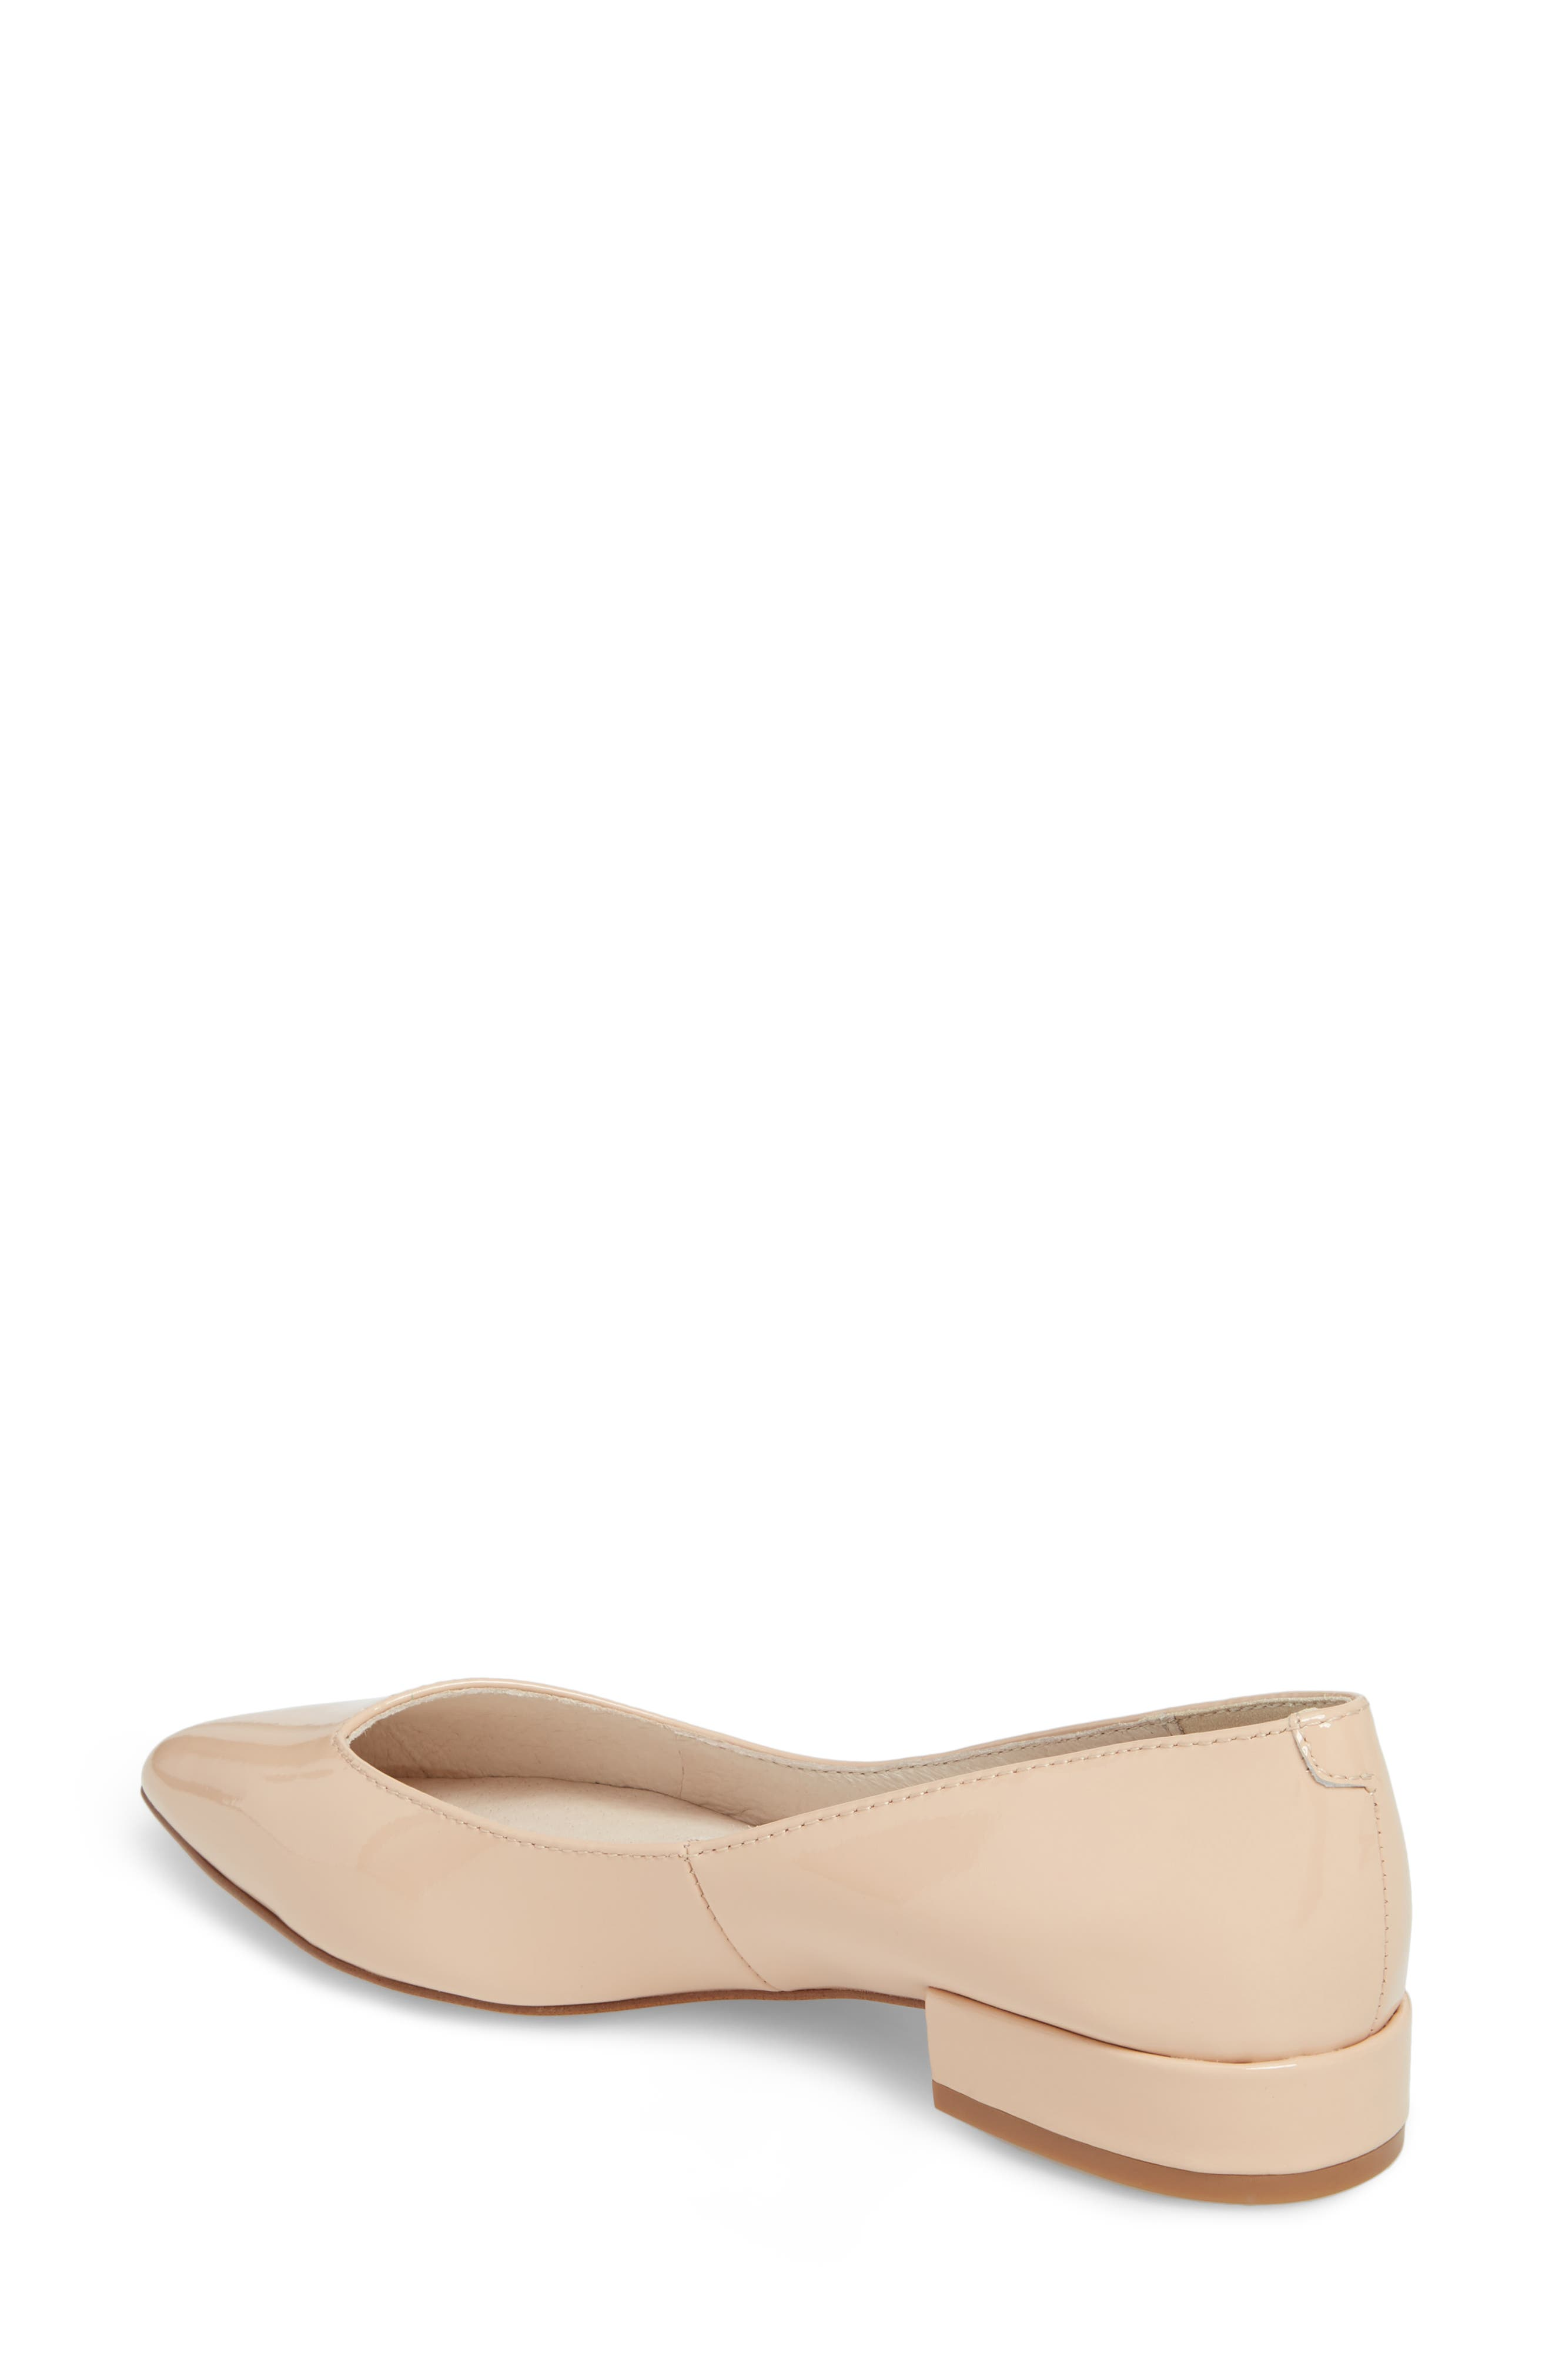 Ames Pointy Toe Flat,                             Alternate thumbnail 2, color,                             294